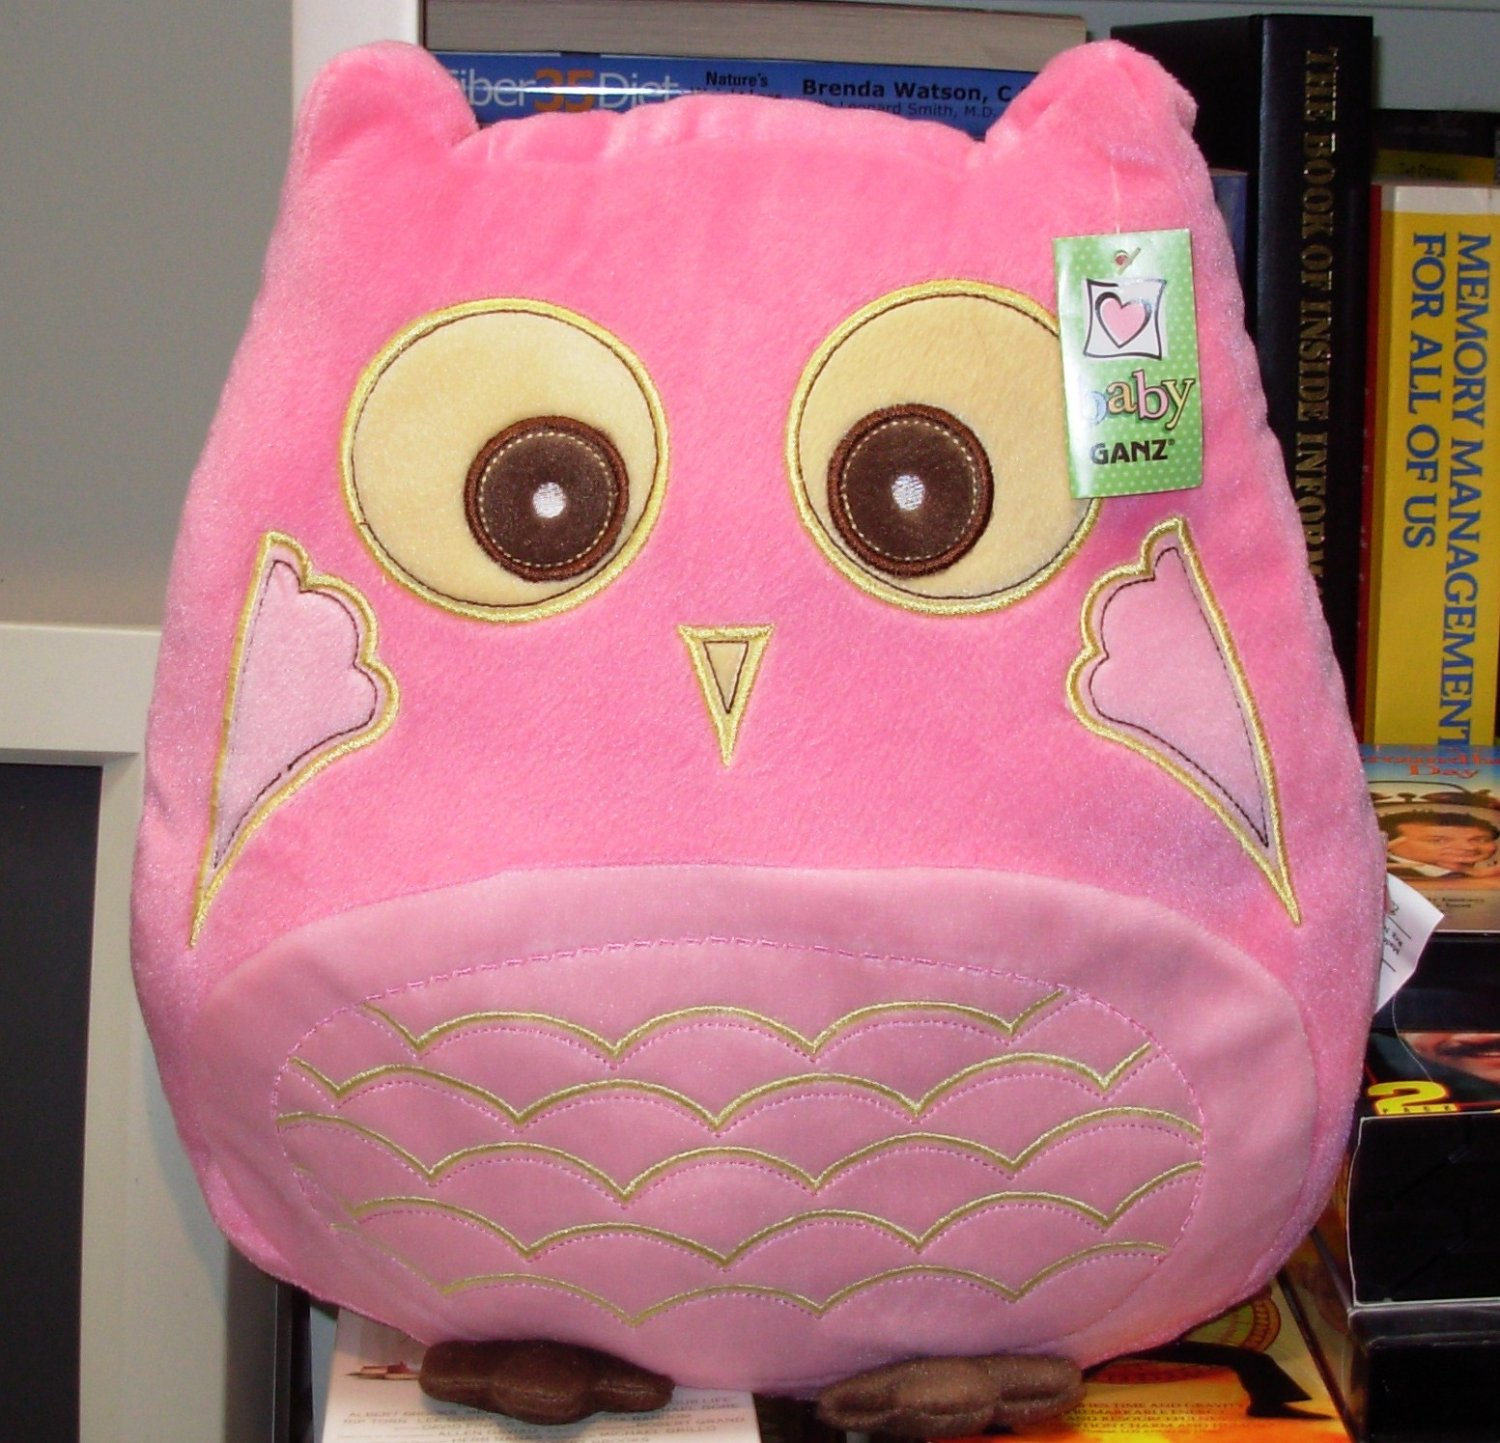 OWL PILLOW PINK POLY KNIT BIRTH AND UP SURFACE WASHABLE NEW GANZ 12 INCH